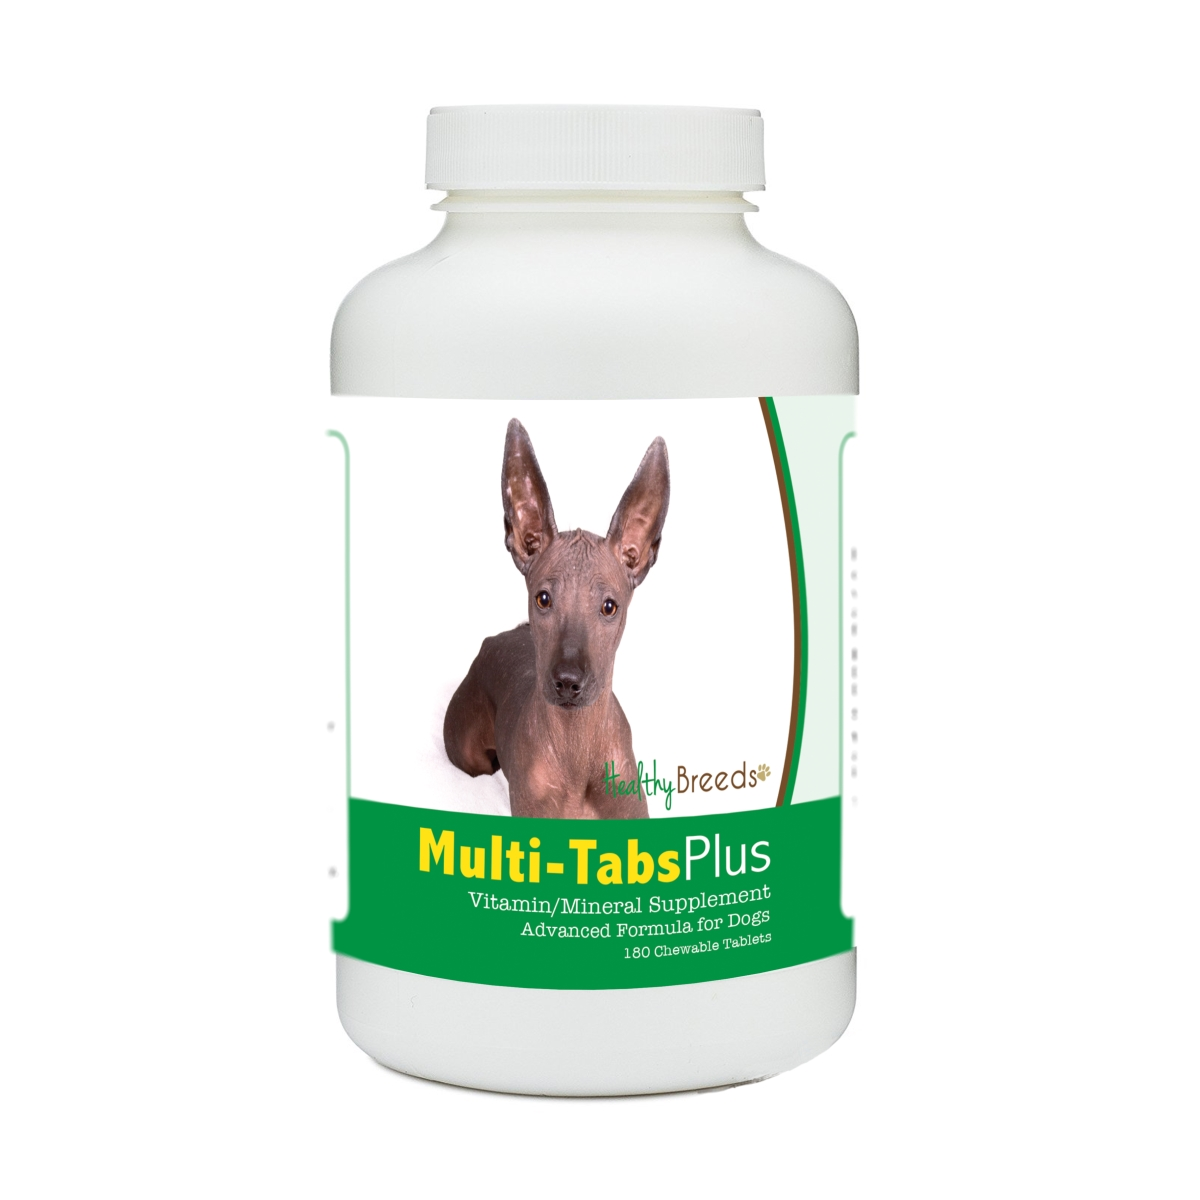 Healthy Breeds 840235178804 Xoloitzcuintli Multi-Tabs Plus Chewable Tablets - 180 Count